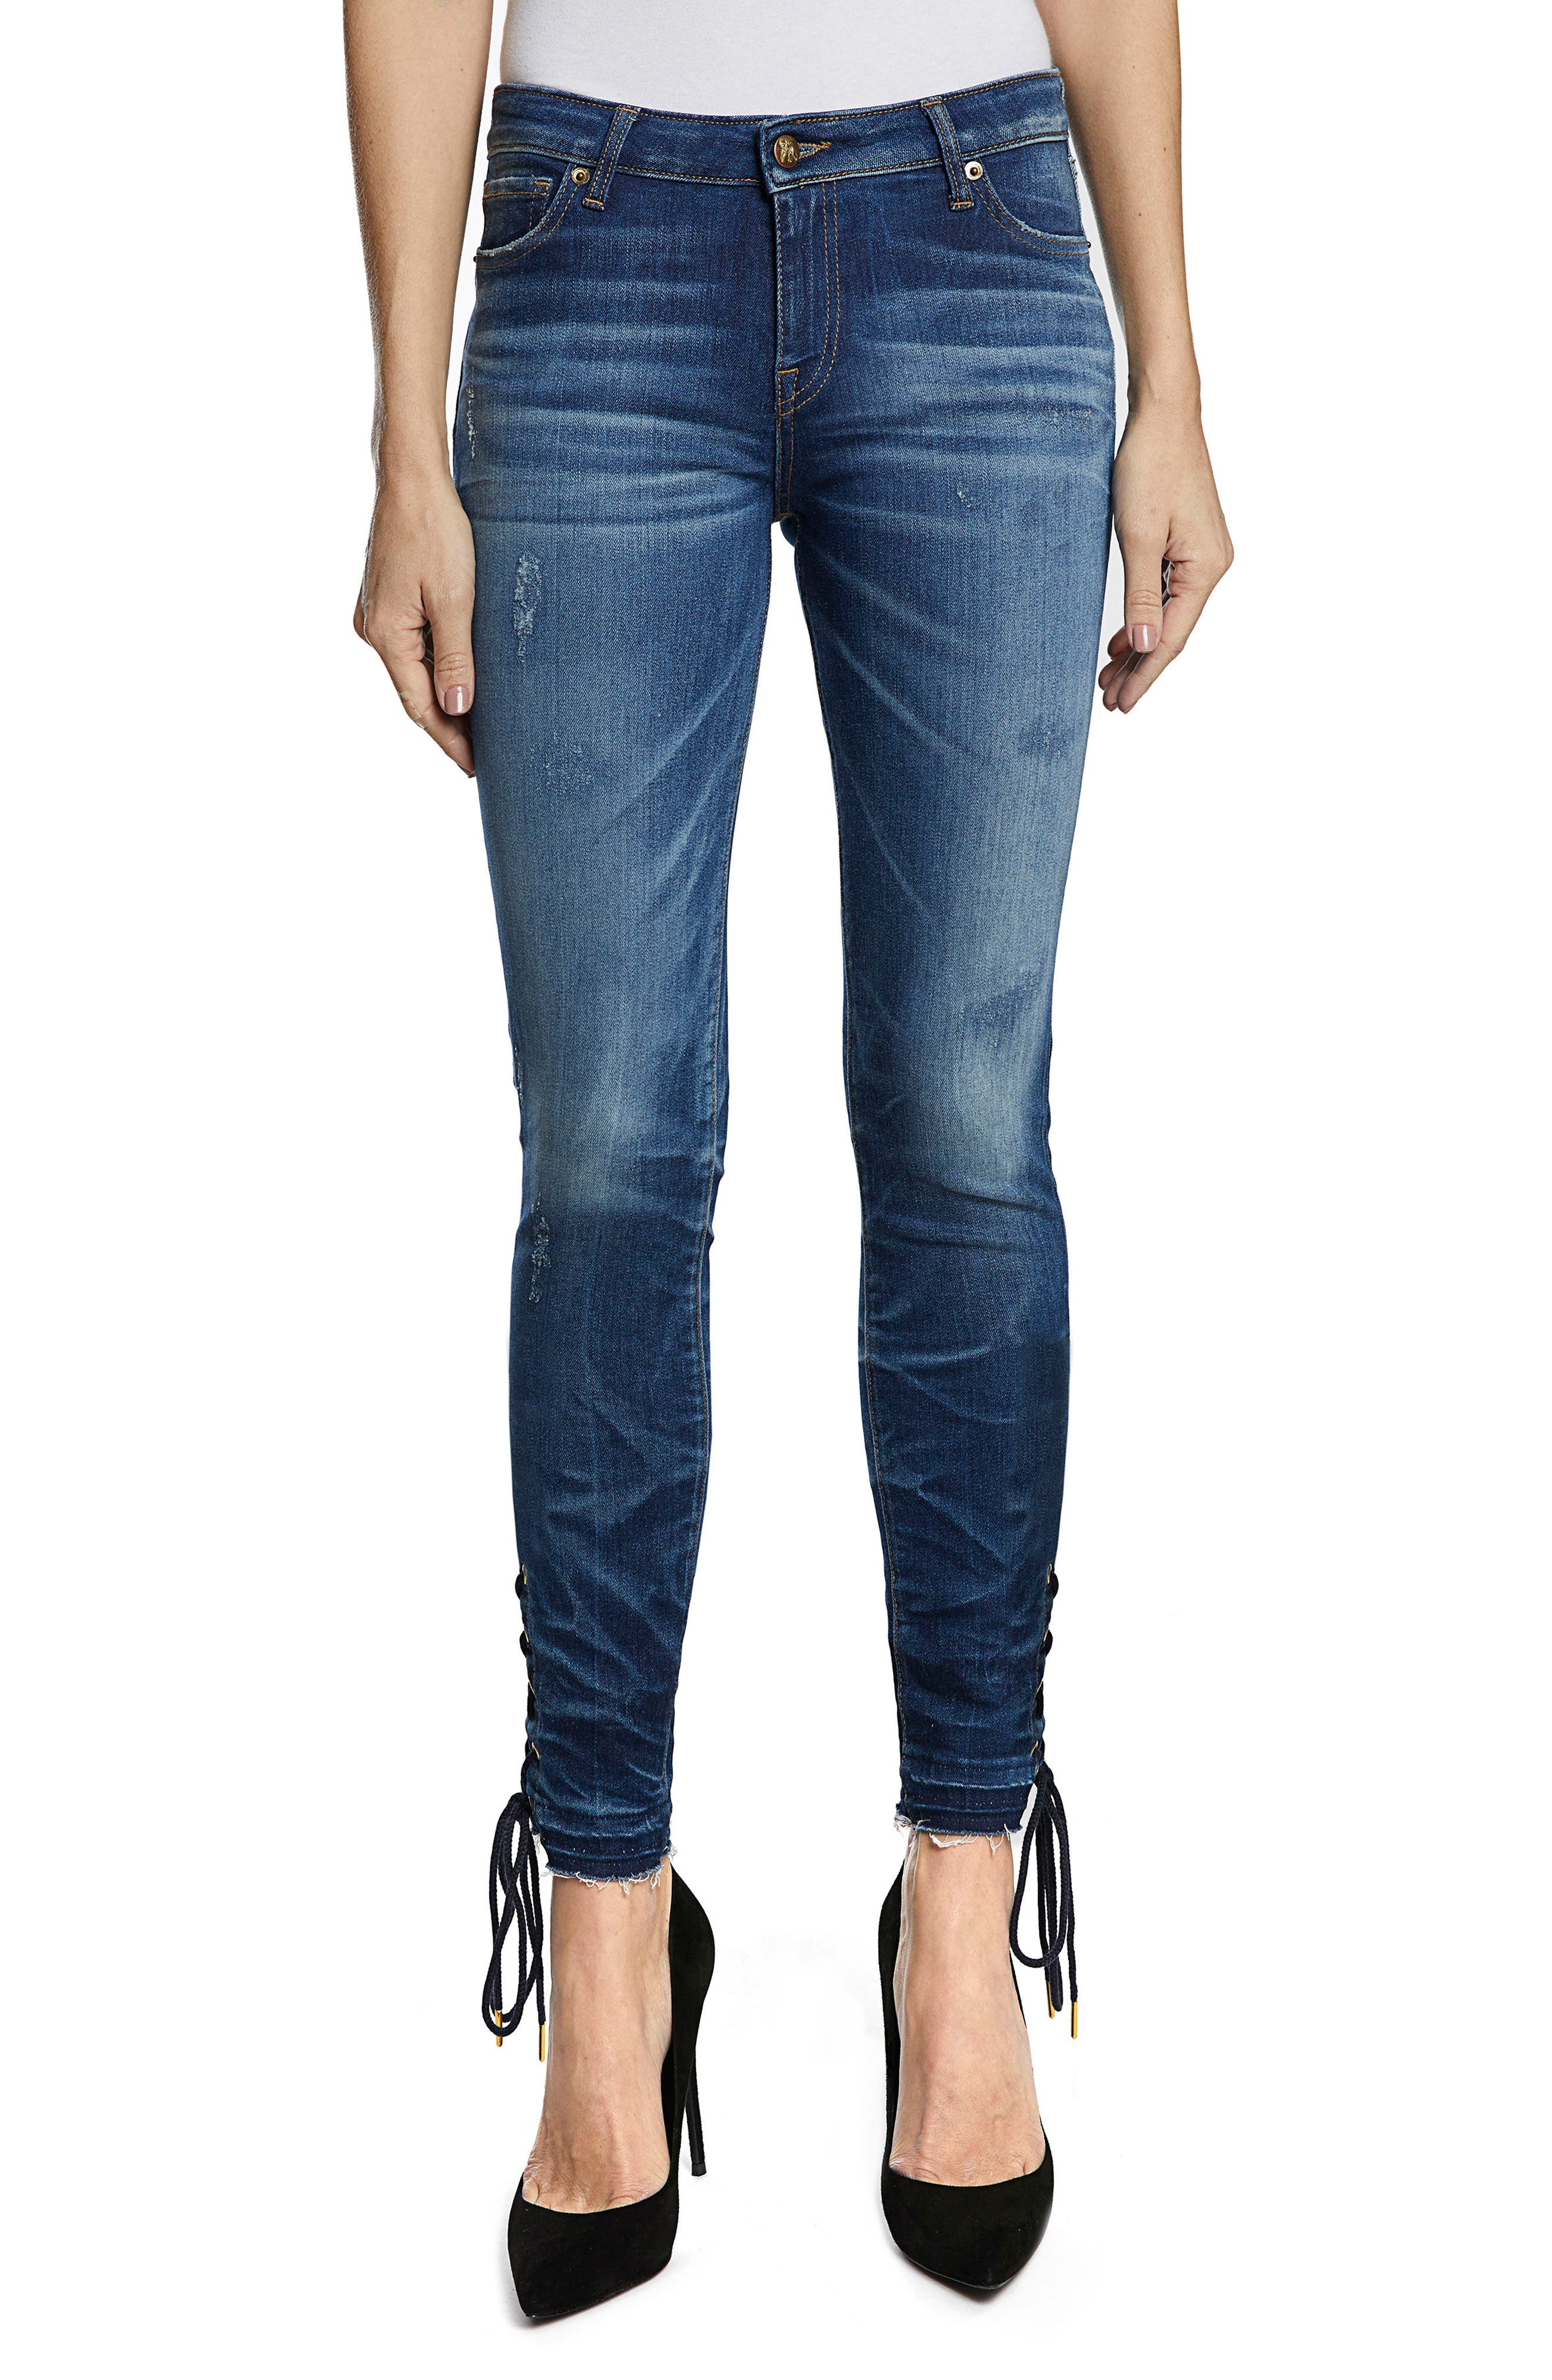 Alternate Image 1 Selected - PRPS Camaro Lace-Up Ankle Skinny Jeans